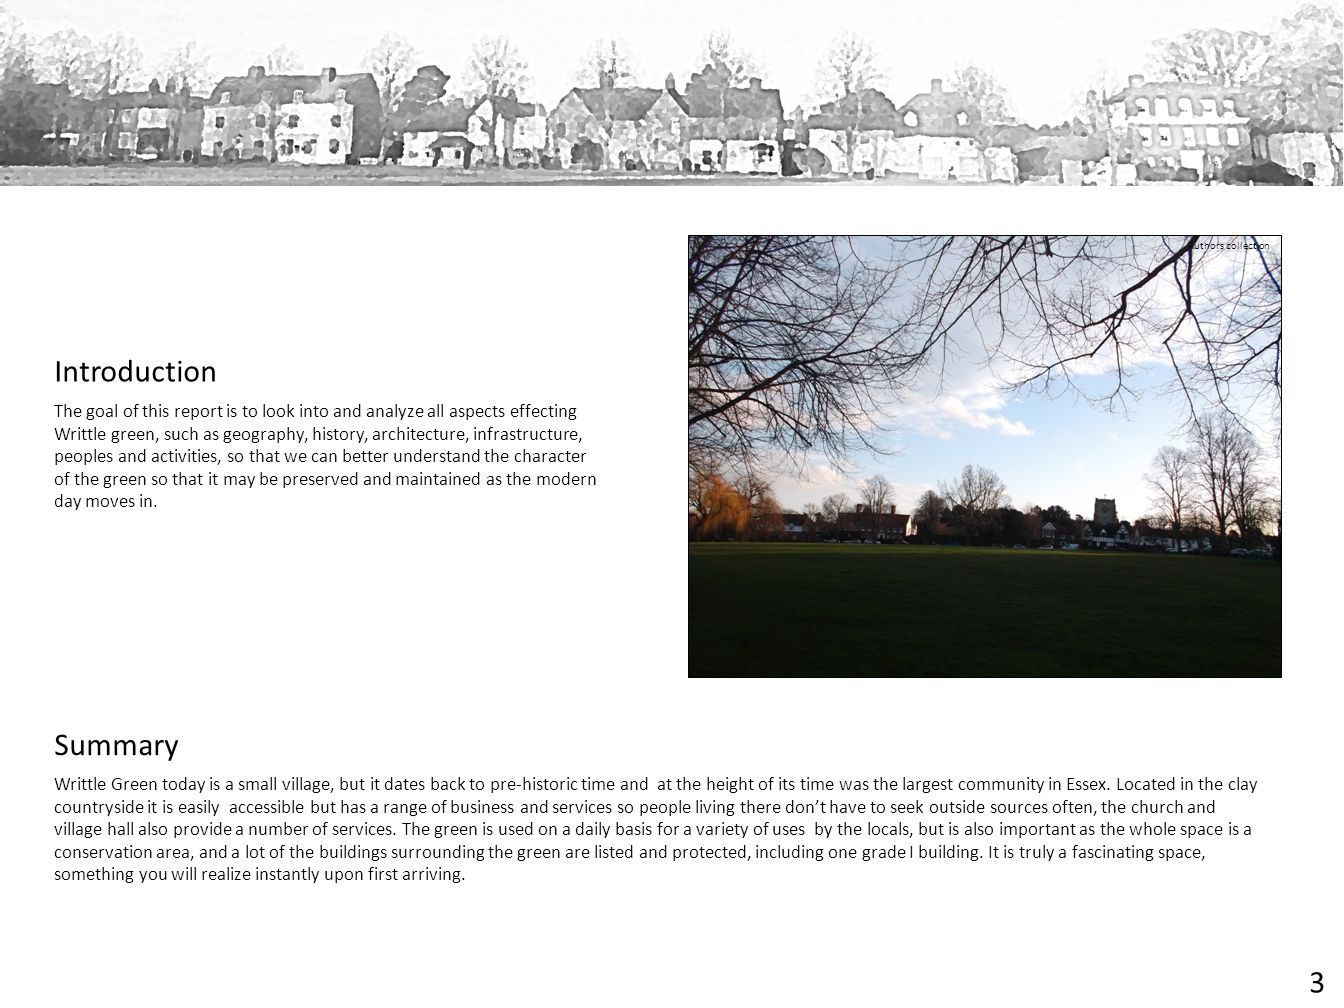 Summary Introduction The goal of this report is to look into and analyze all aspects effecting Writtle green, such as geography, history, architecture, infrastructure, peoples and activities, so that we can better understand the character of the green so that it may be preserved and maintained as the modern day moves in.